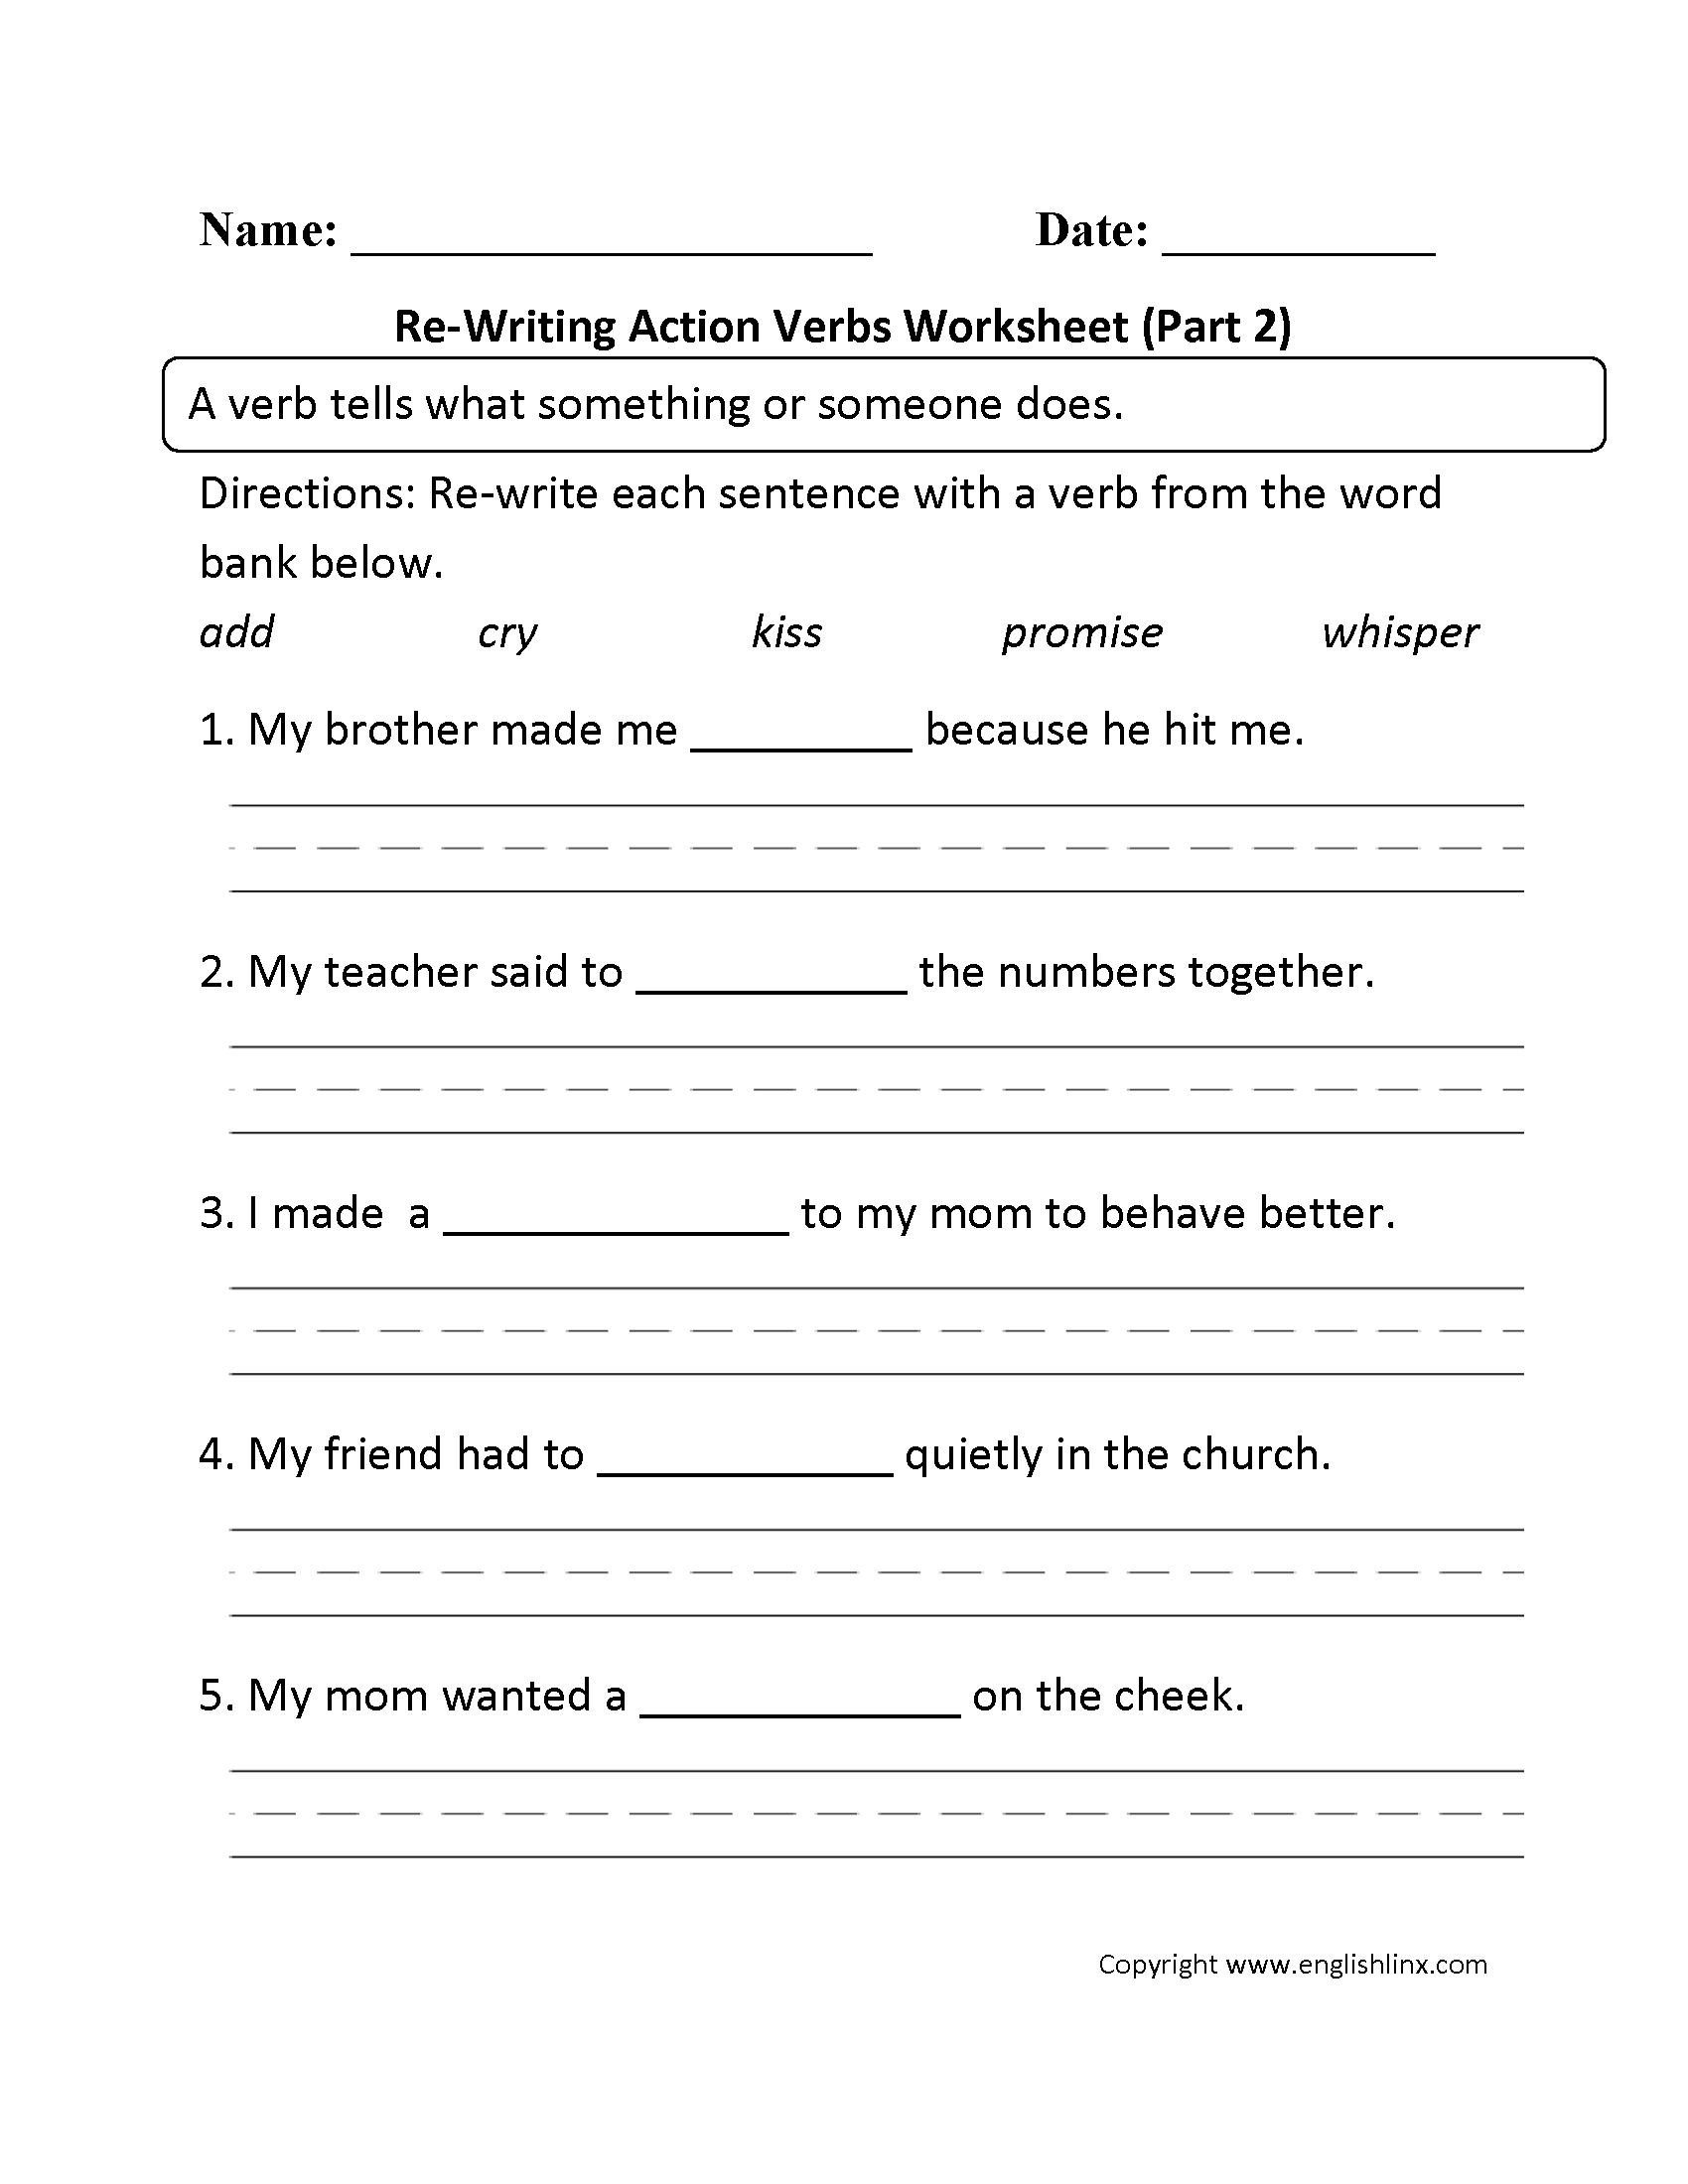 small resolution of Re-Writing Action Verbs Worksheet Part 2   Action verbs worksheet